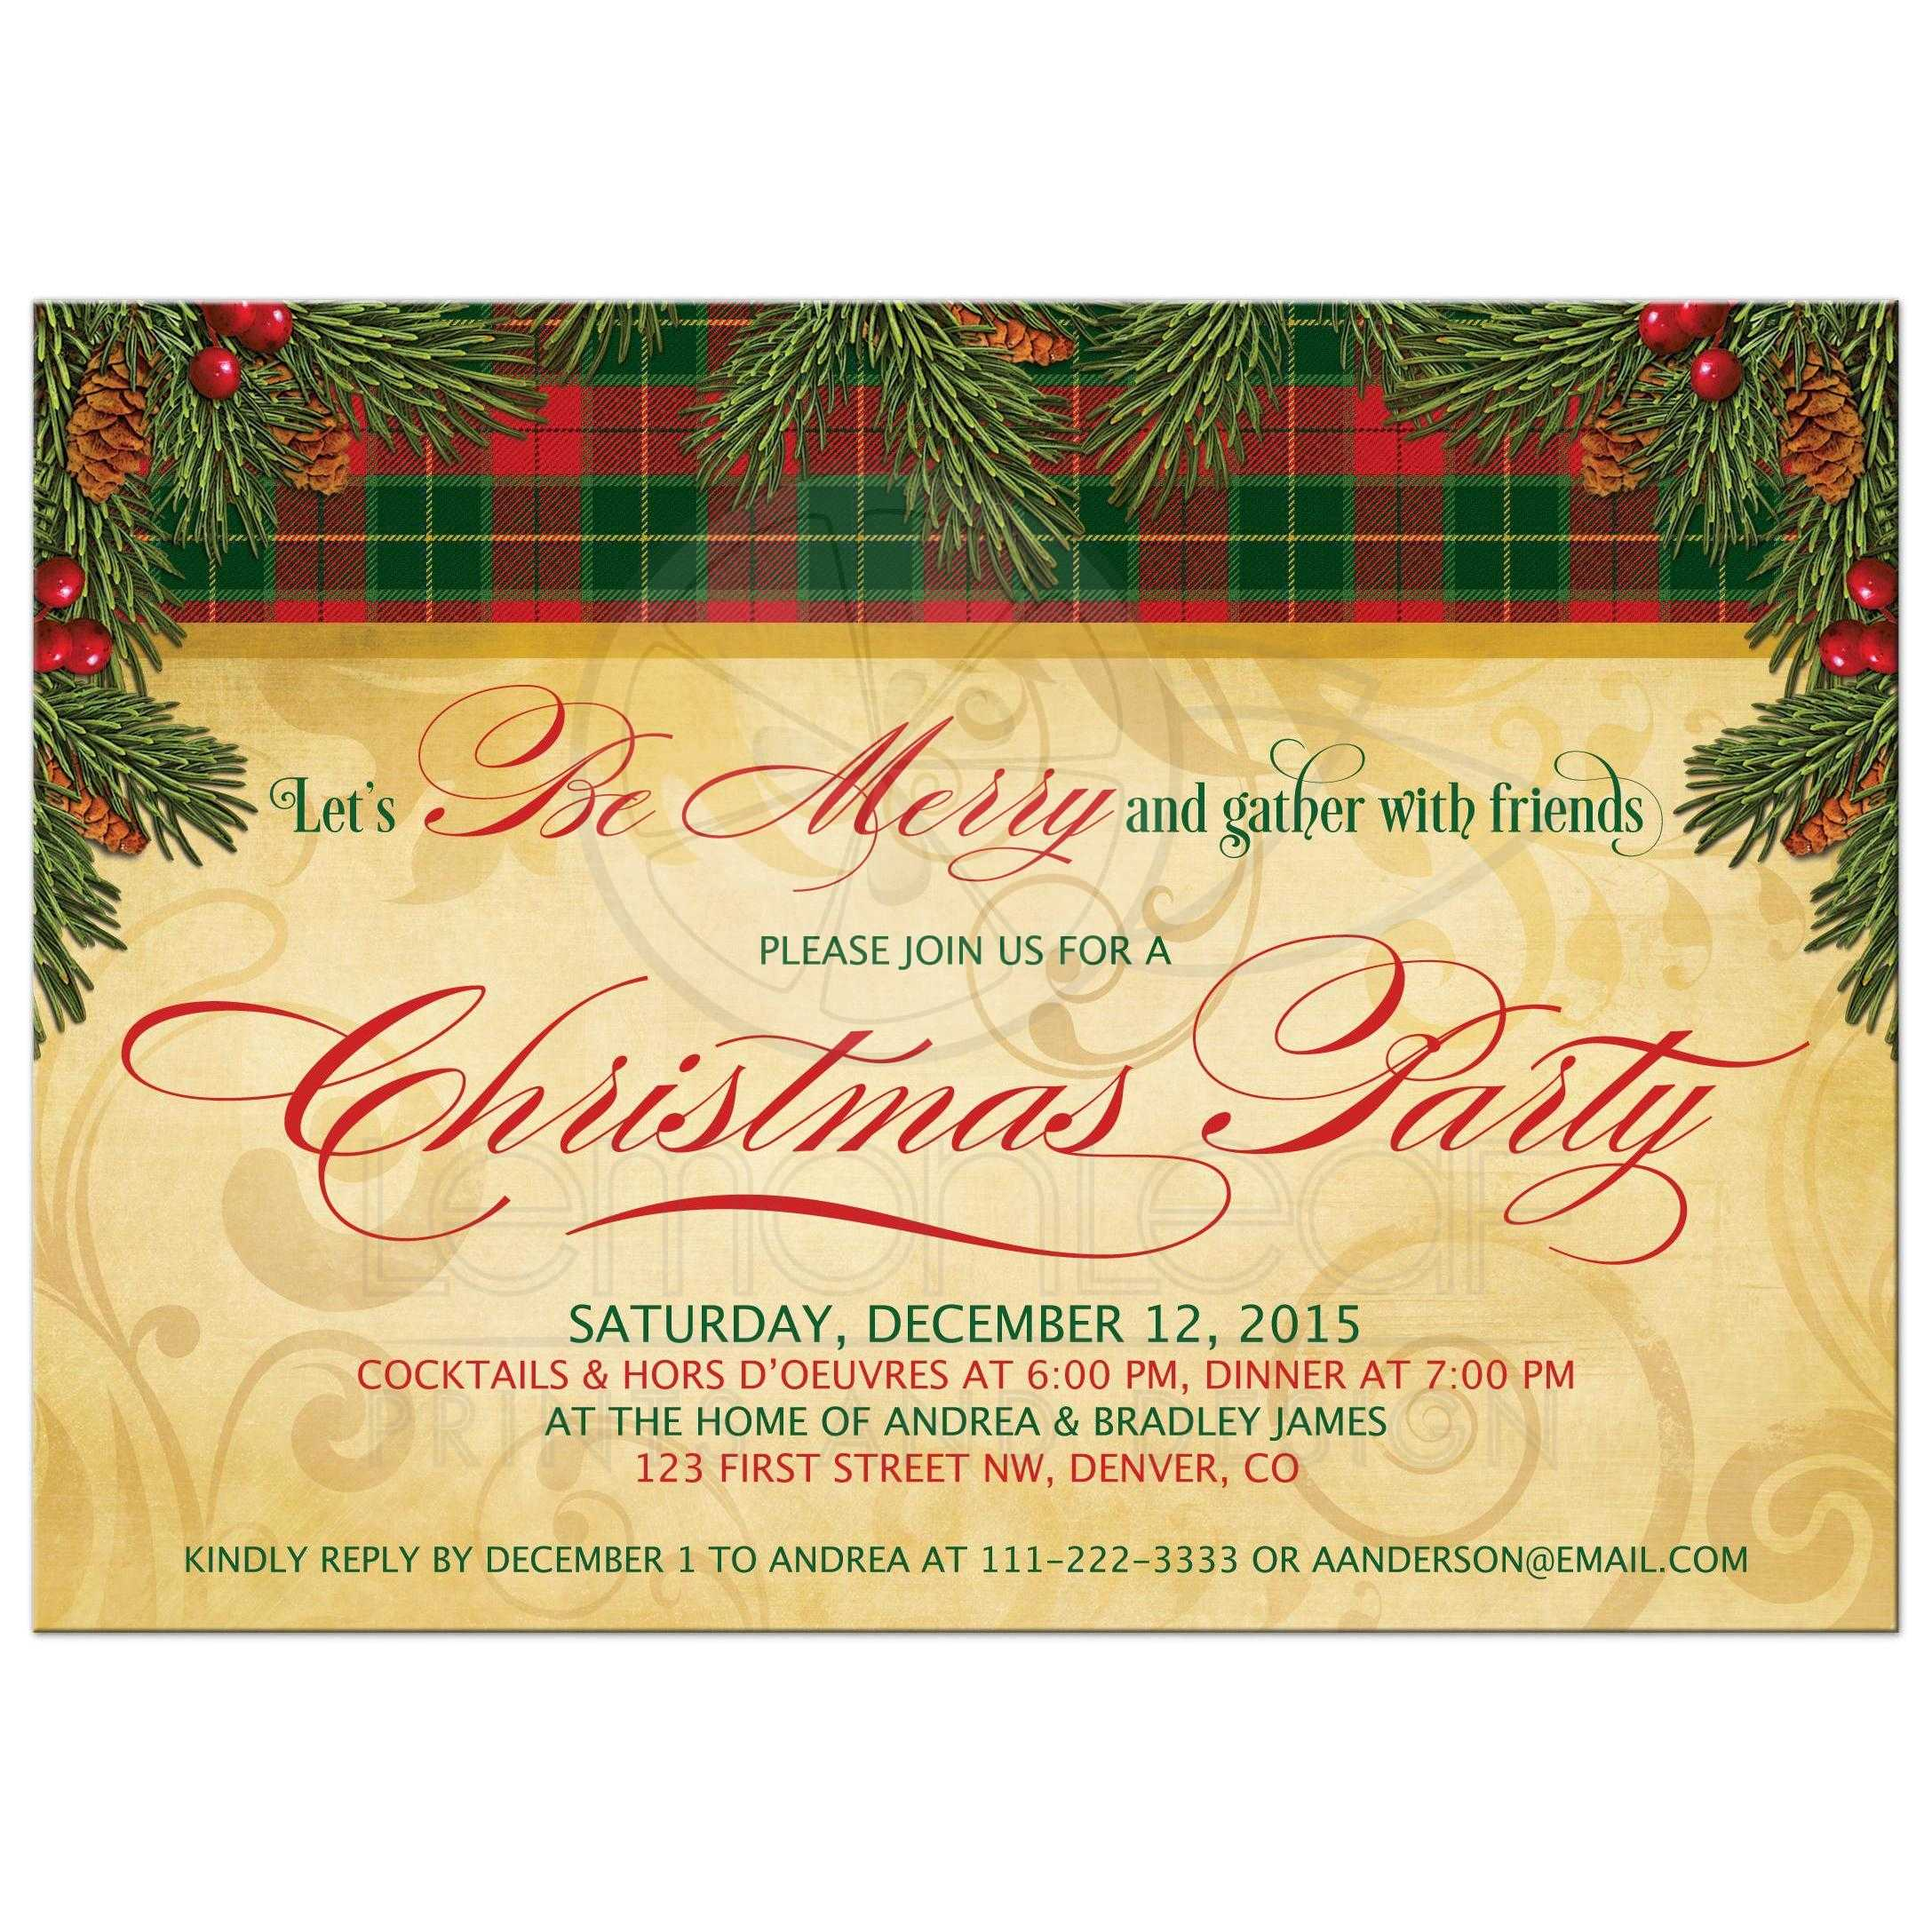 traditional christmas party invitation pine boughs cones pine boughs and berries traditional christmas party invitation front